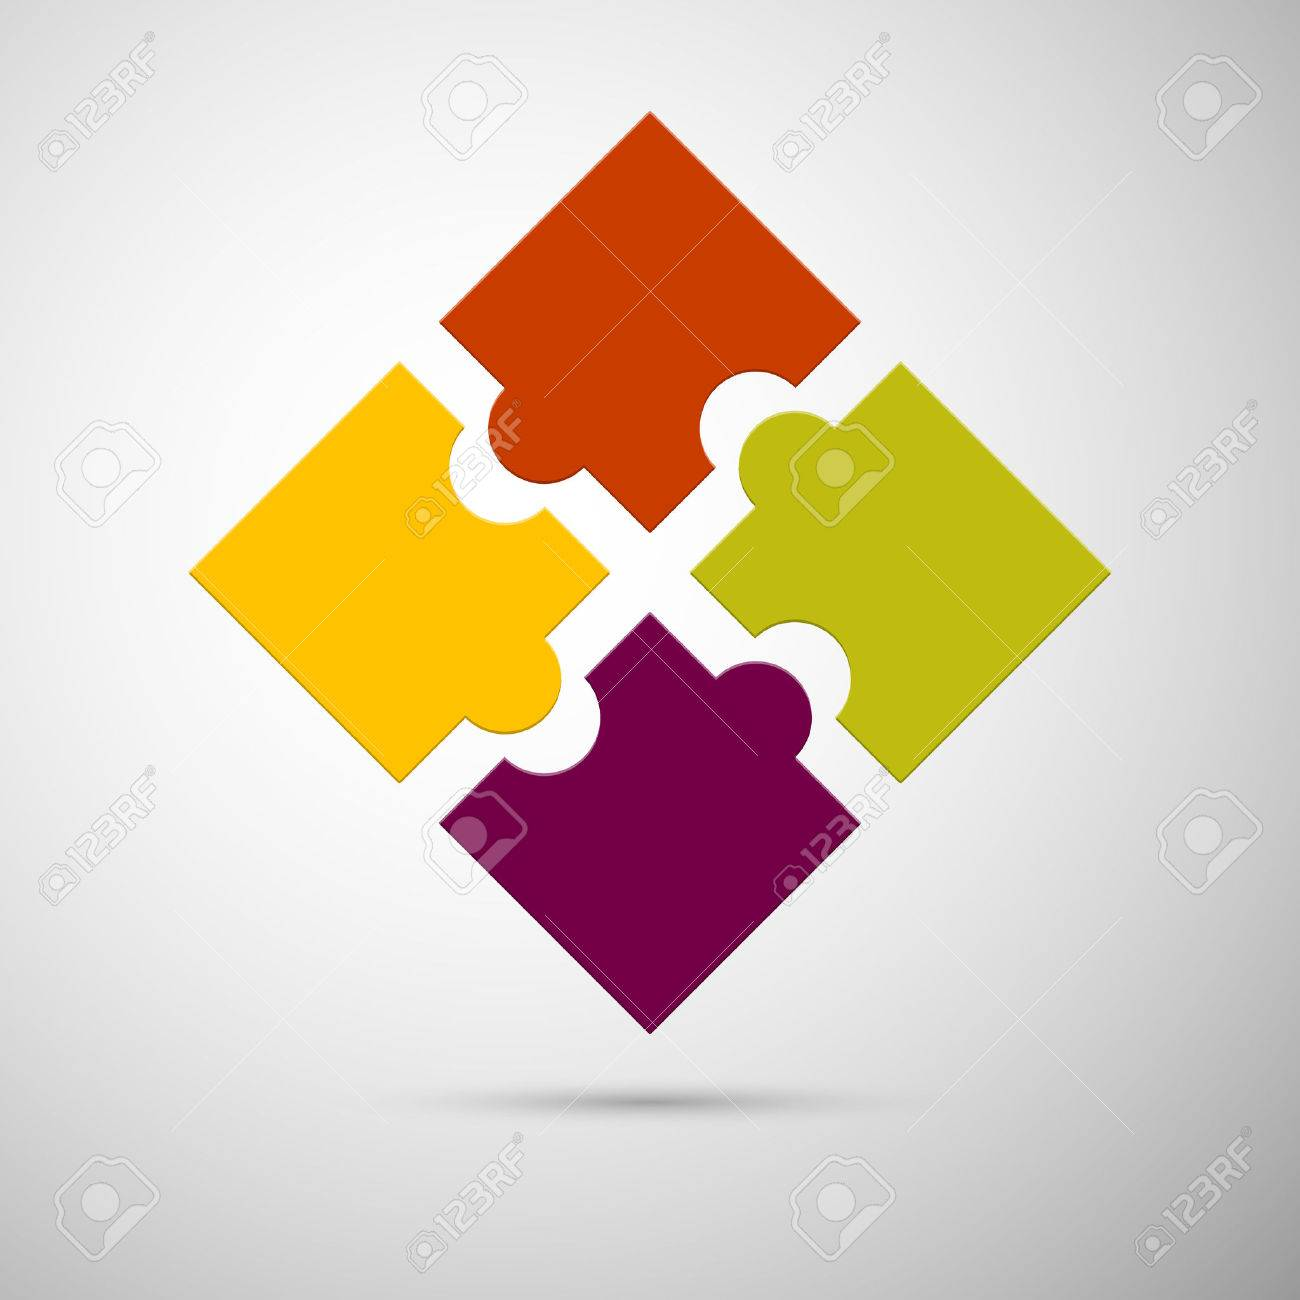 yellow, red, violet and green colored plastic puzzle infographic concept Stock Vector - 27658250